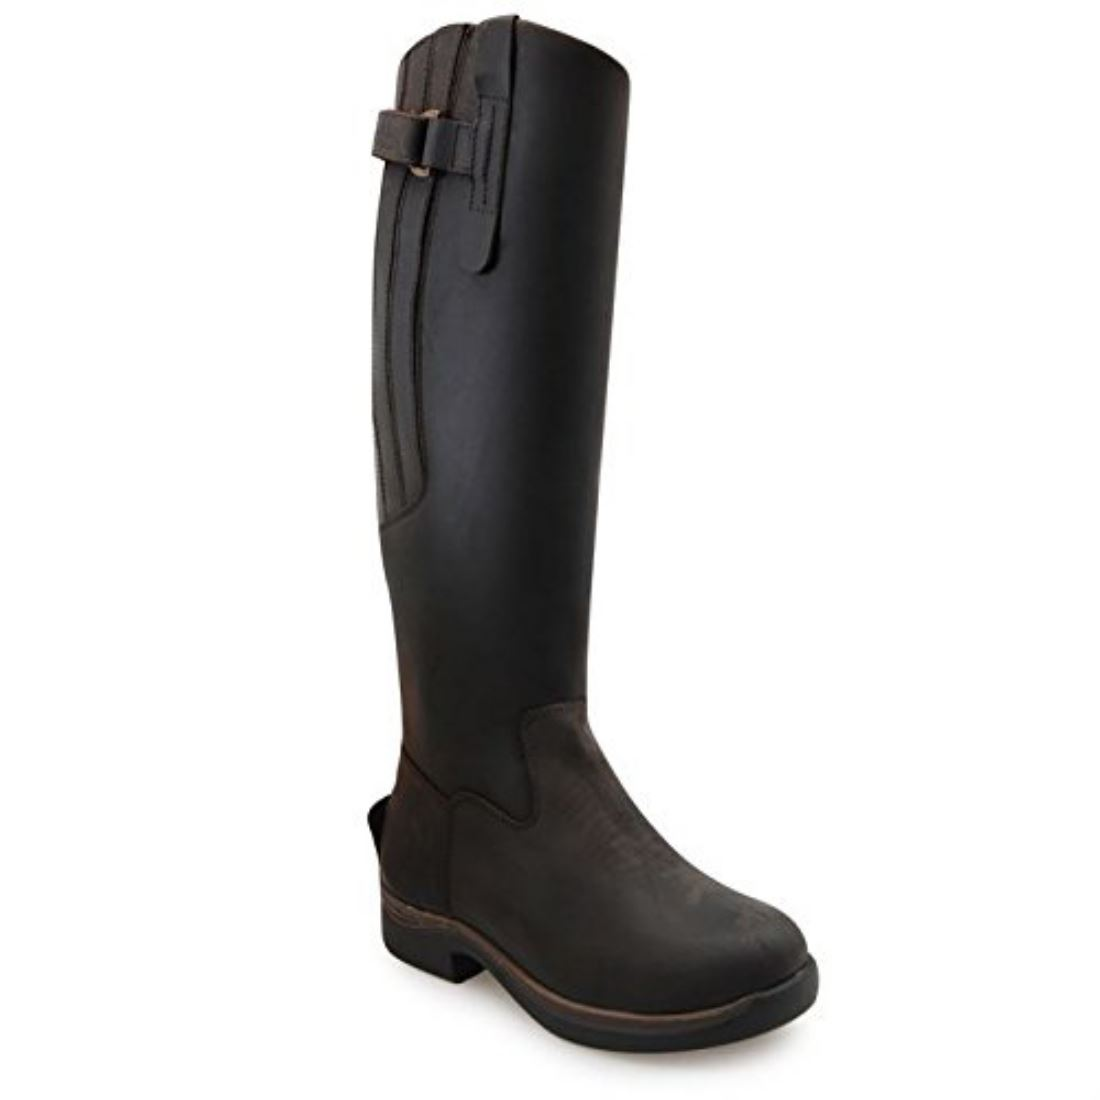 Amazing Horse Riding Boots For Women  Model White Horse Riding Boots For Women Creativity | Sobatapk.com